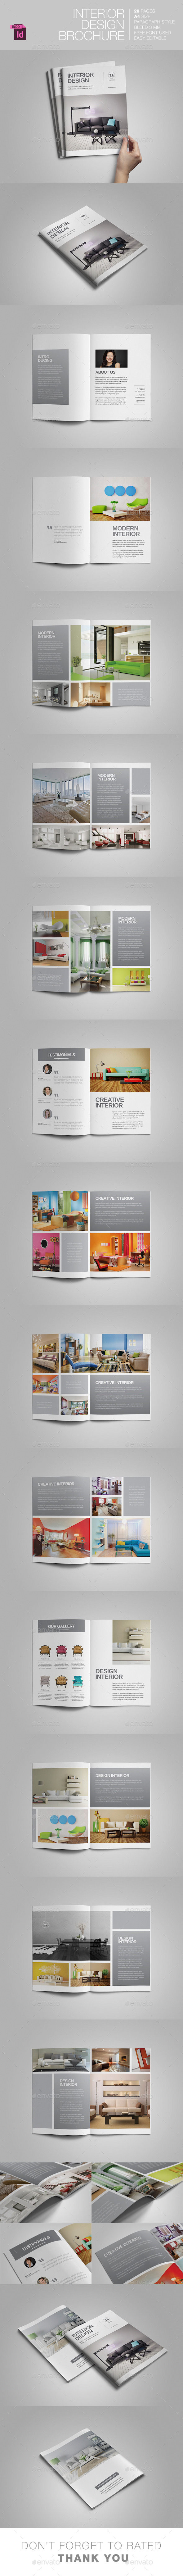 GraphicRiver Interior Design Brochure 11403664